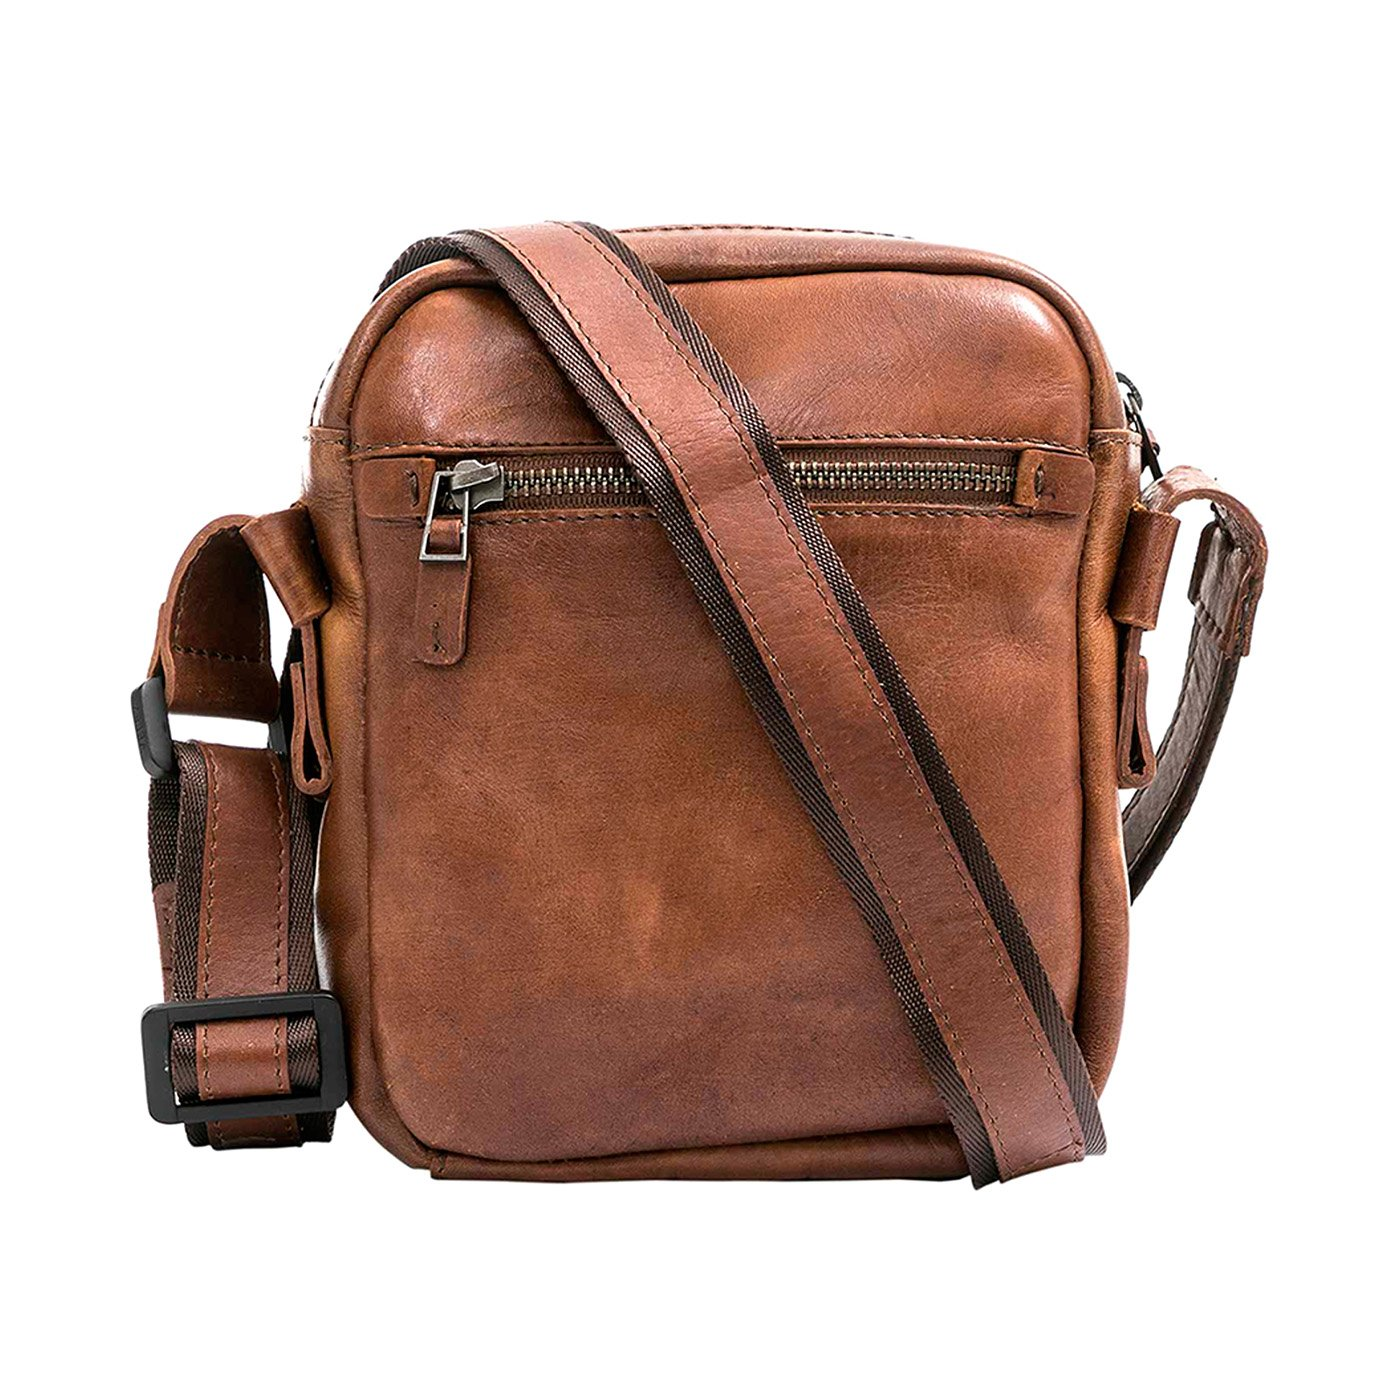 Amazon.com: VÉLEZ Men Genuine Leather Crossbody Bag | Bandolera De Cuero Bicolor: Shoes